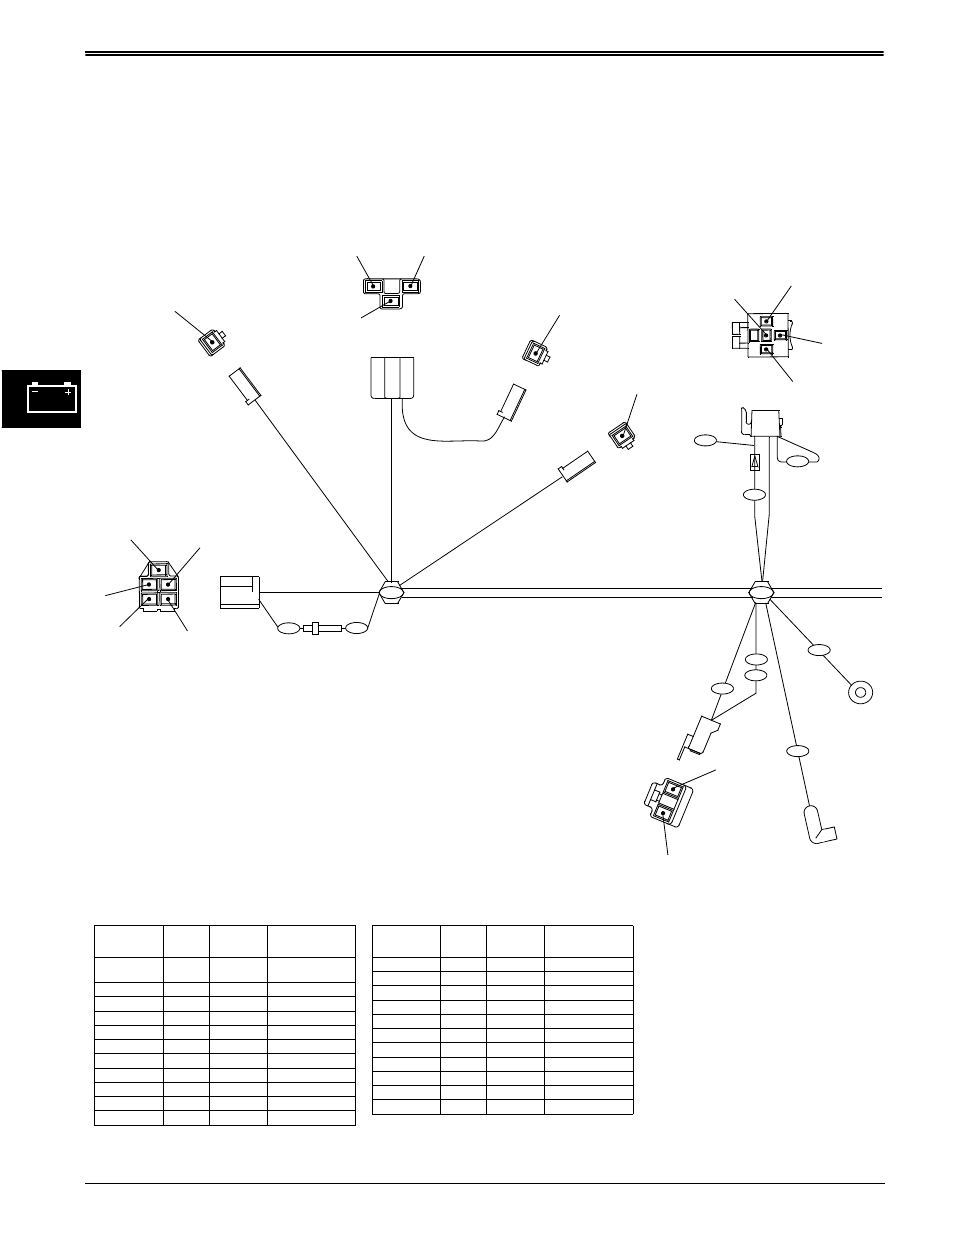 hight resolution of wiring harness diagrams electrical john deere stx38 user manual page 94 314